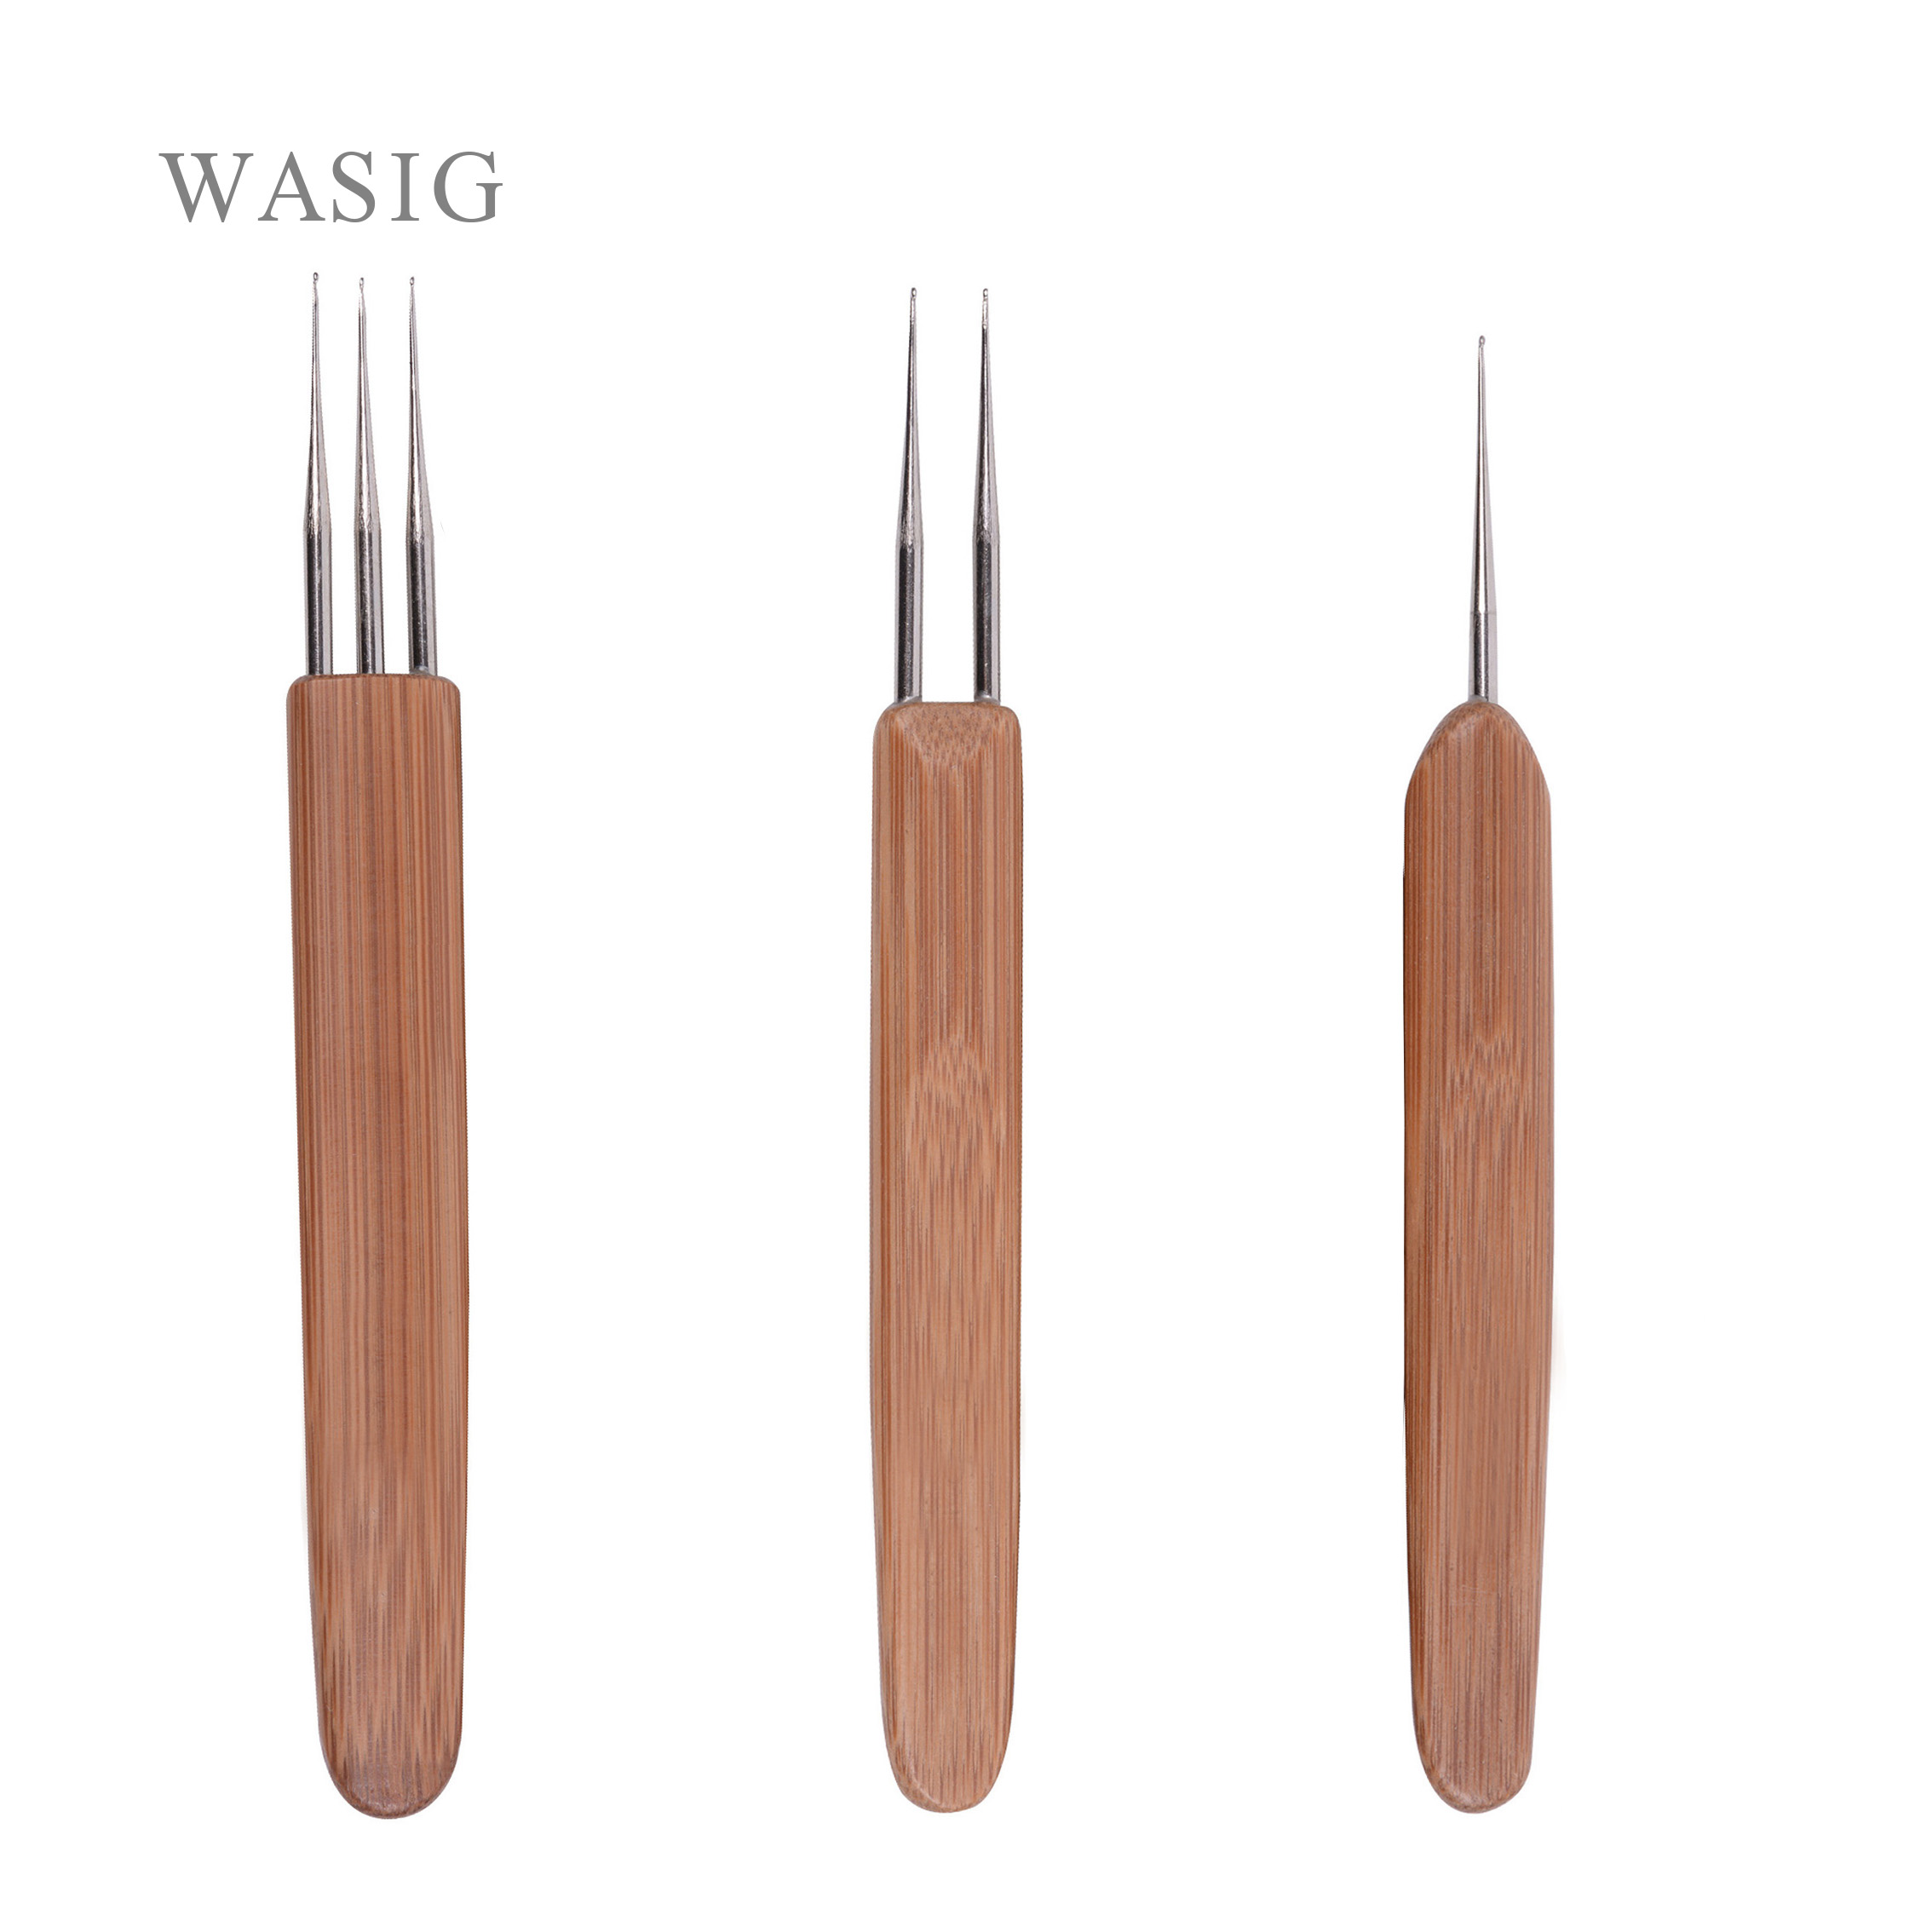 Bamboo Crochet Needle For Hair Dreadlock Accessories Wig Making Tools Dreadlocks Hook Needles 1/2/3 Hooks